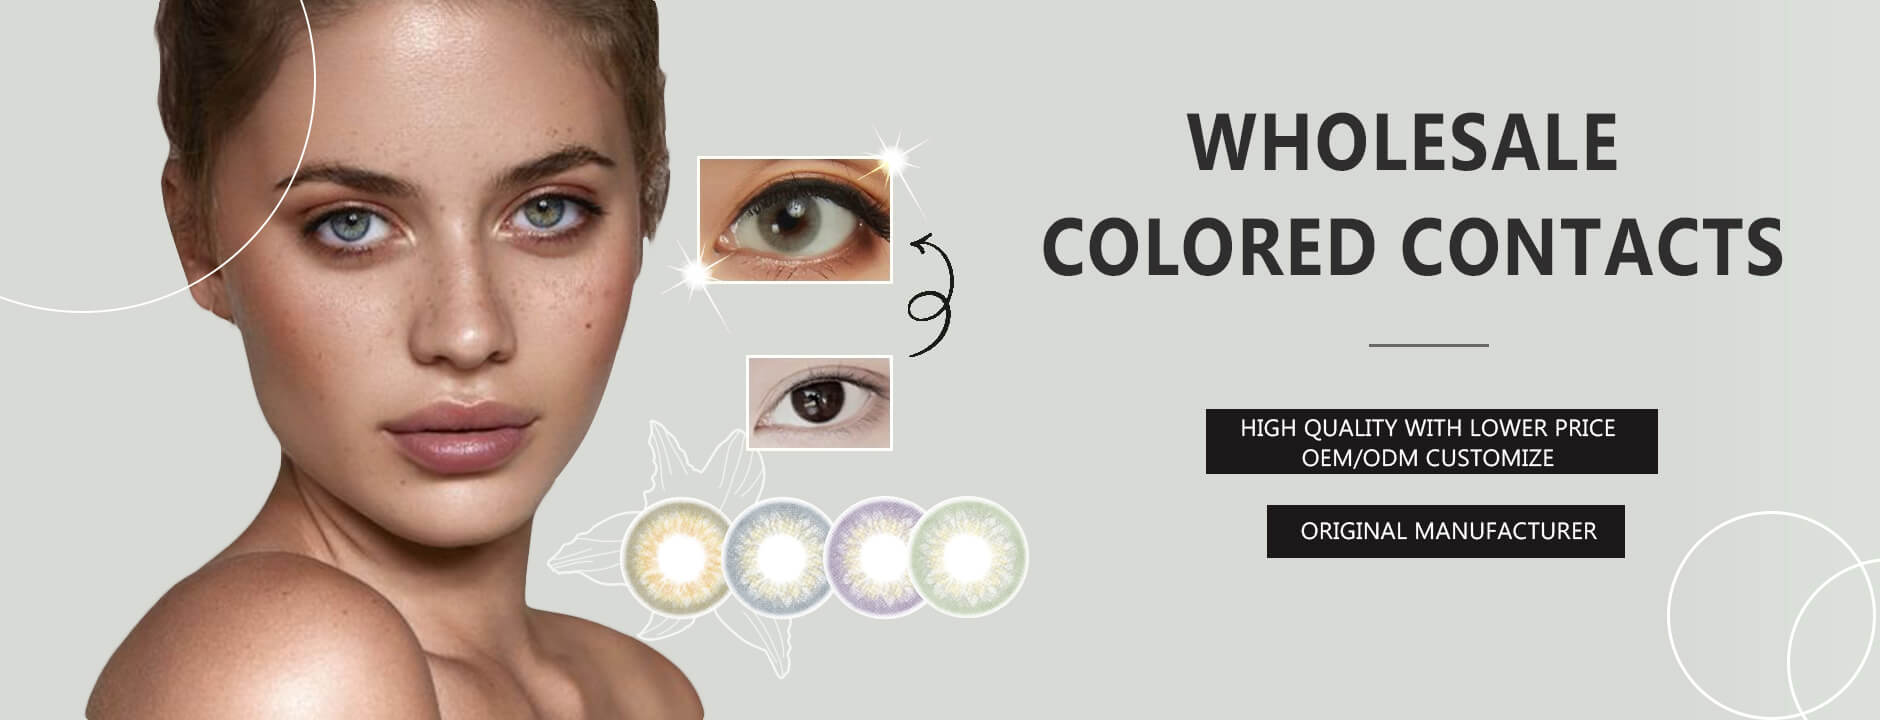 wholesale contact lenses